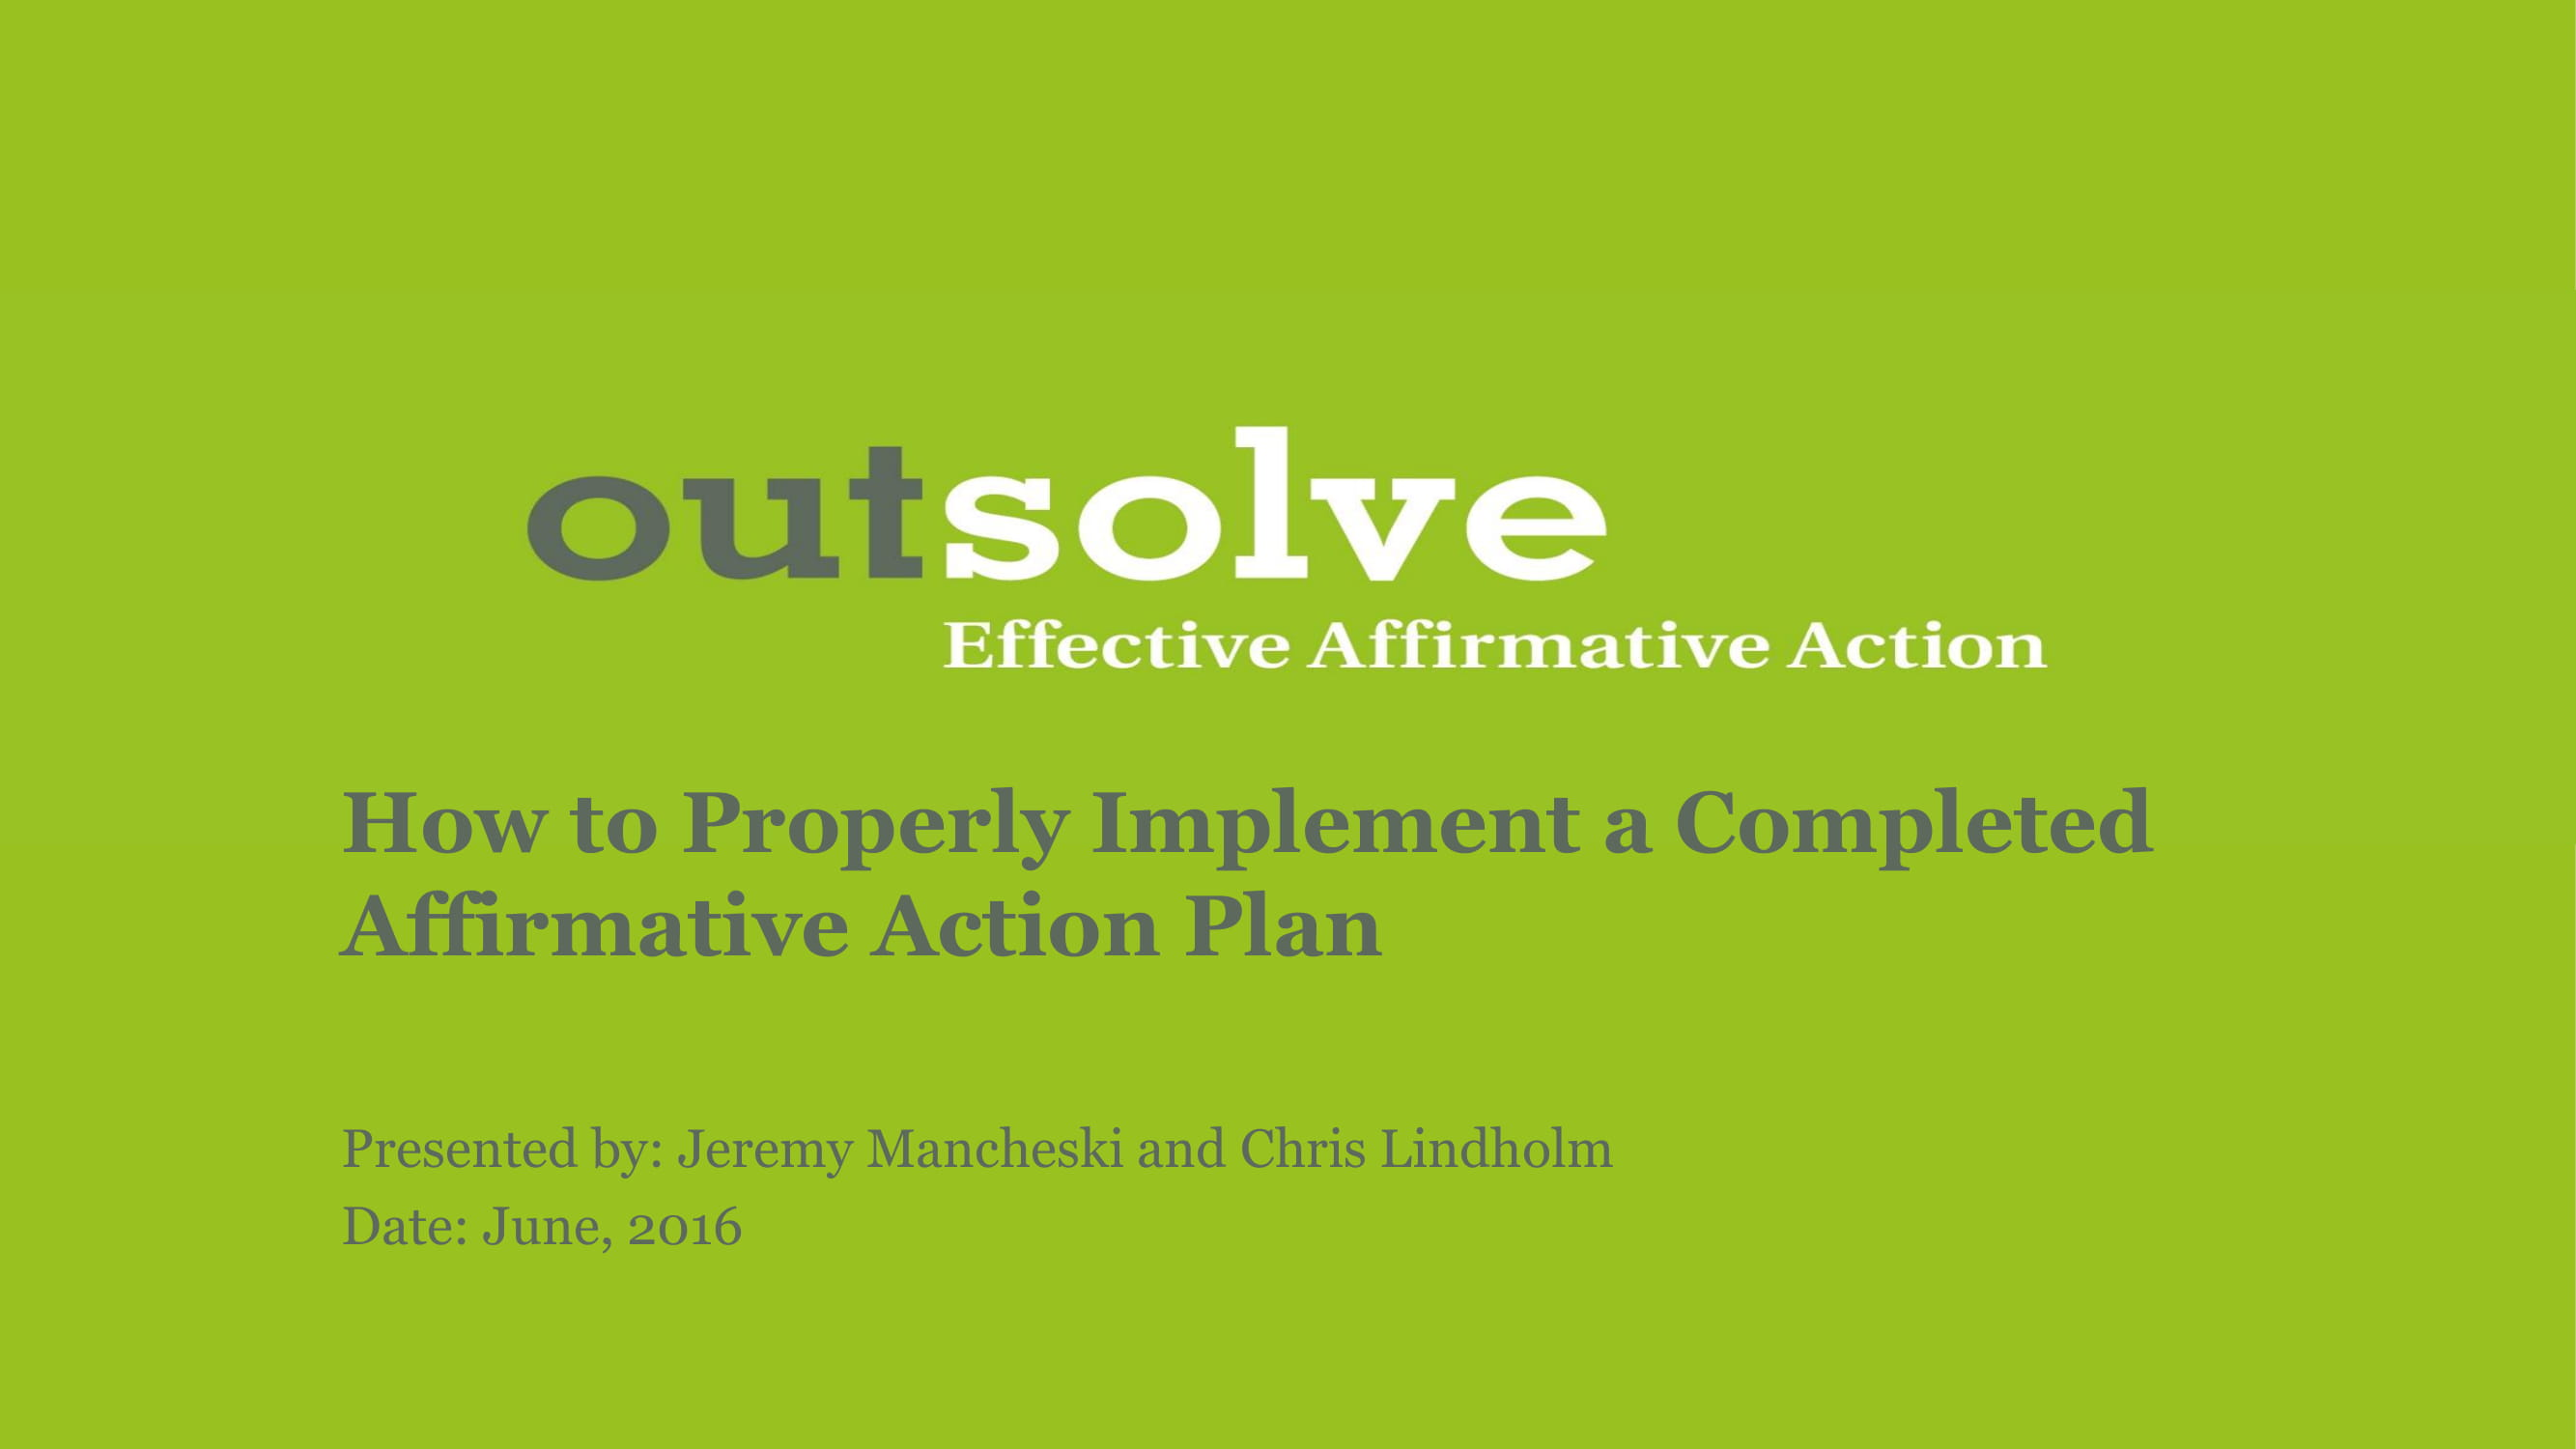 completed affirmative action plan example 01